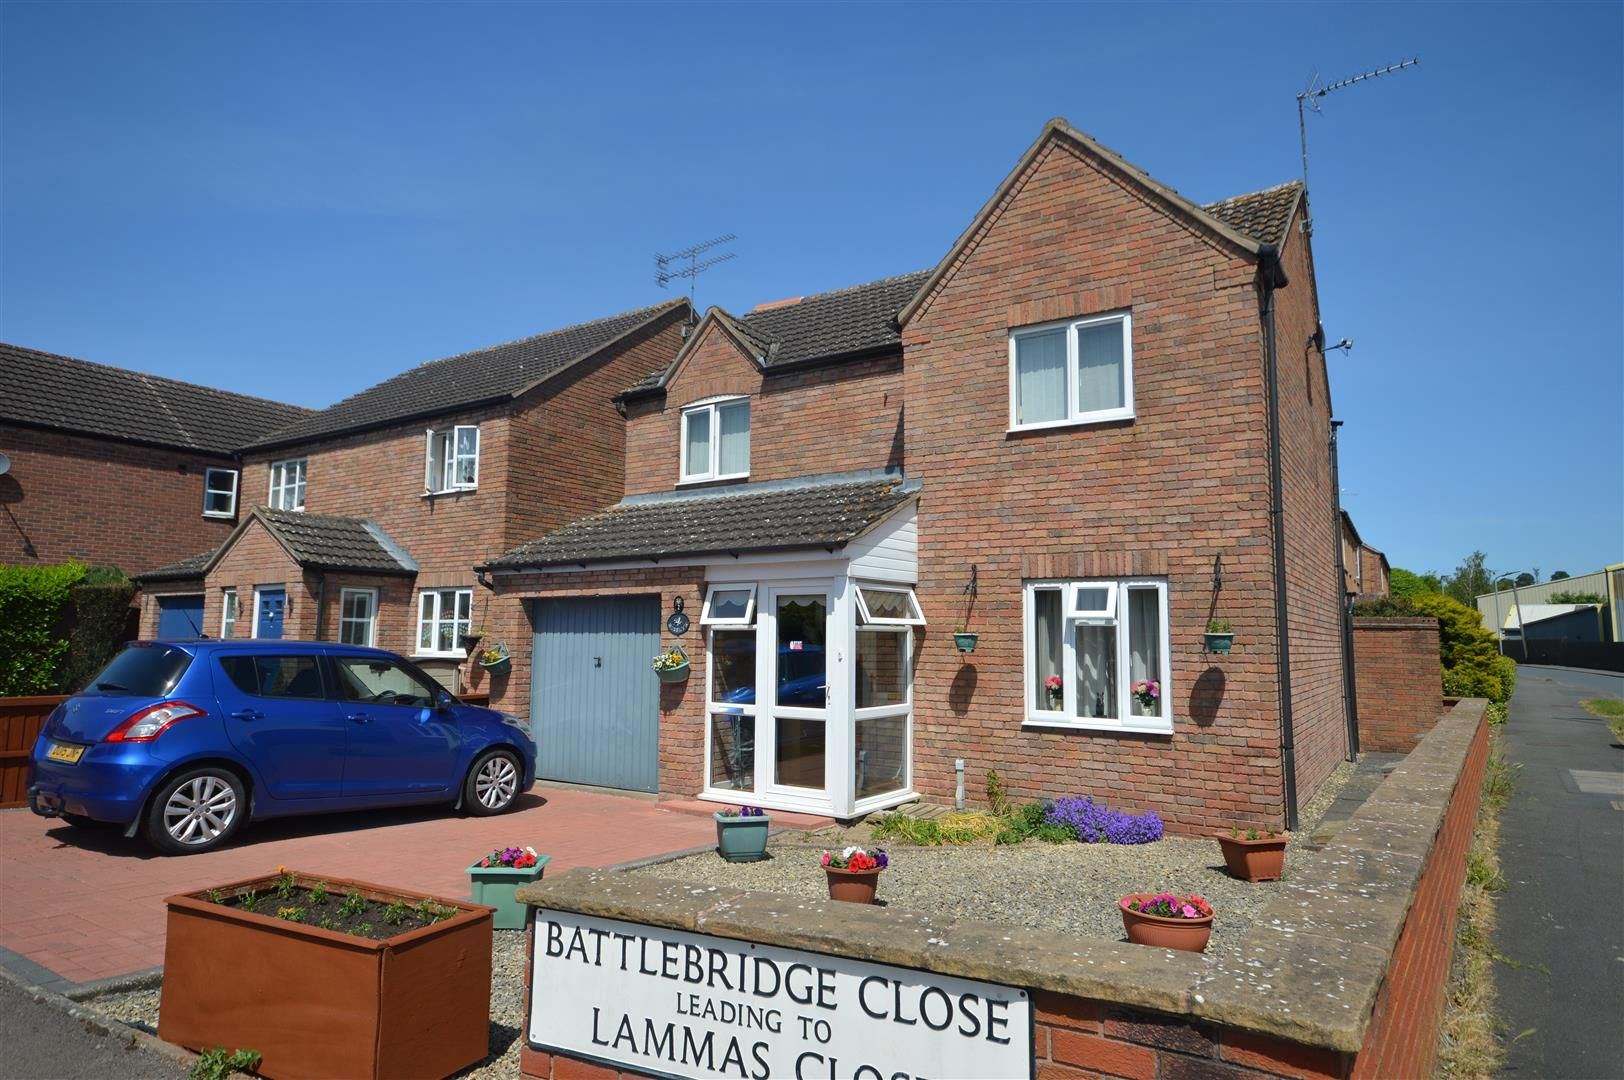 3 bed detached for sale in Leominster 1